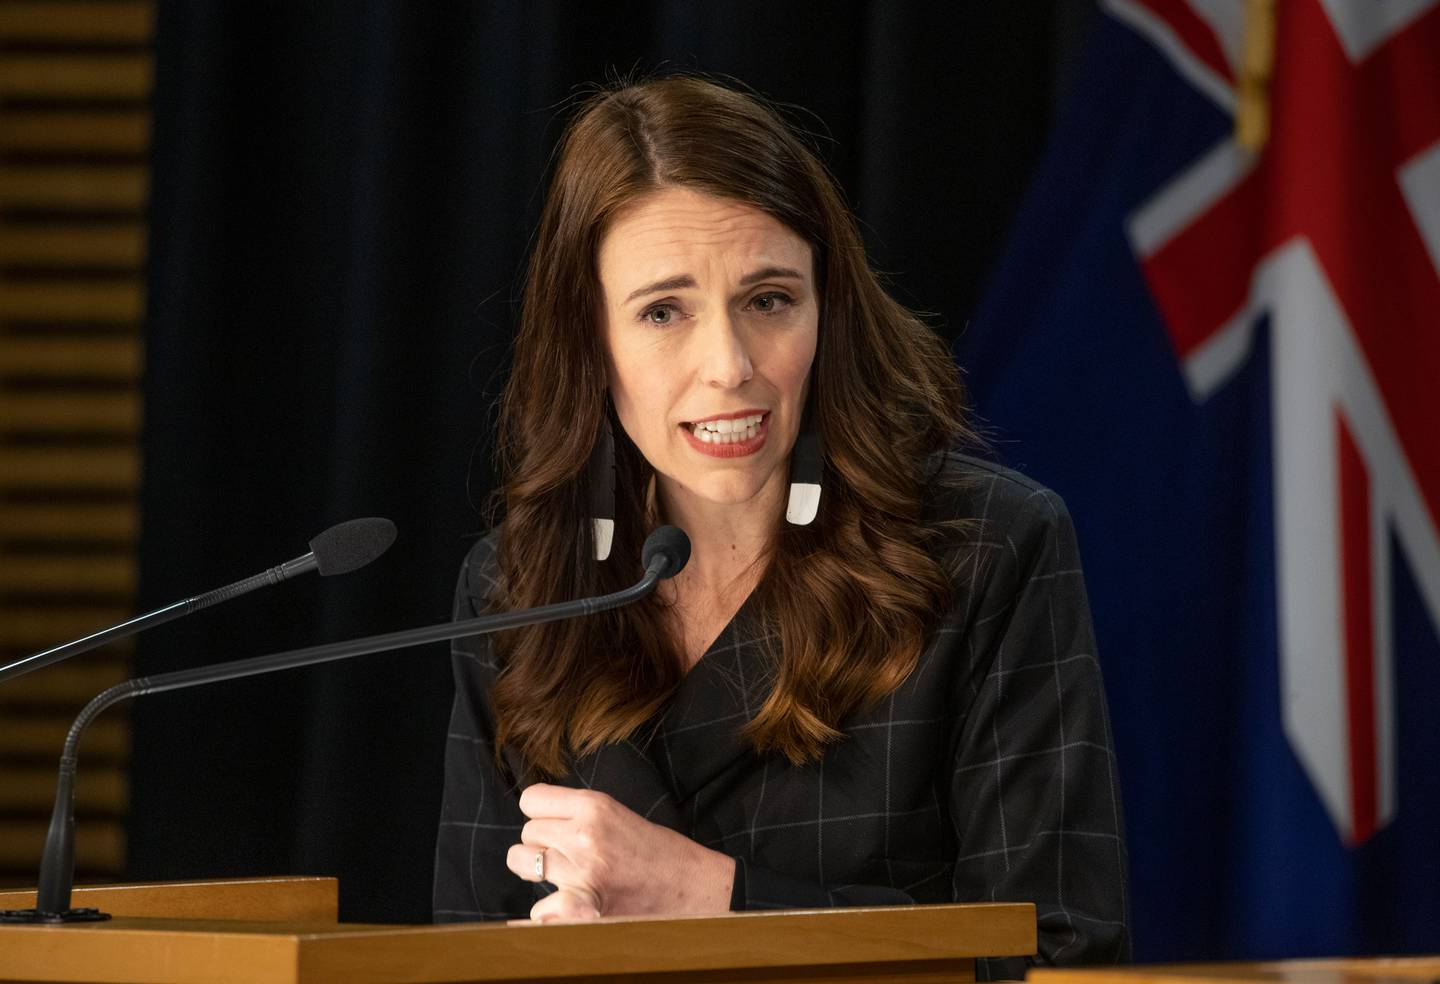 Jacinda Ardern said she and her family members will be vaccinated but they aren't the priority - frontline border workers are. Photo / Mark Mitchell